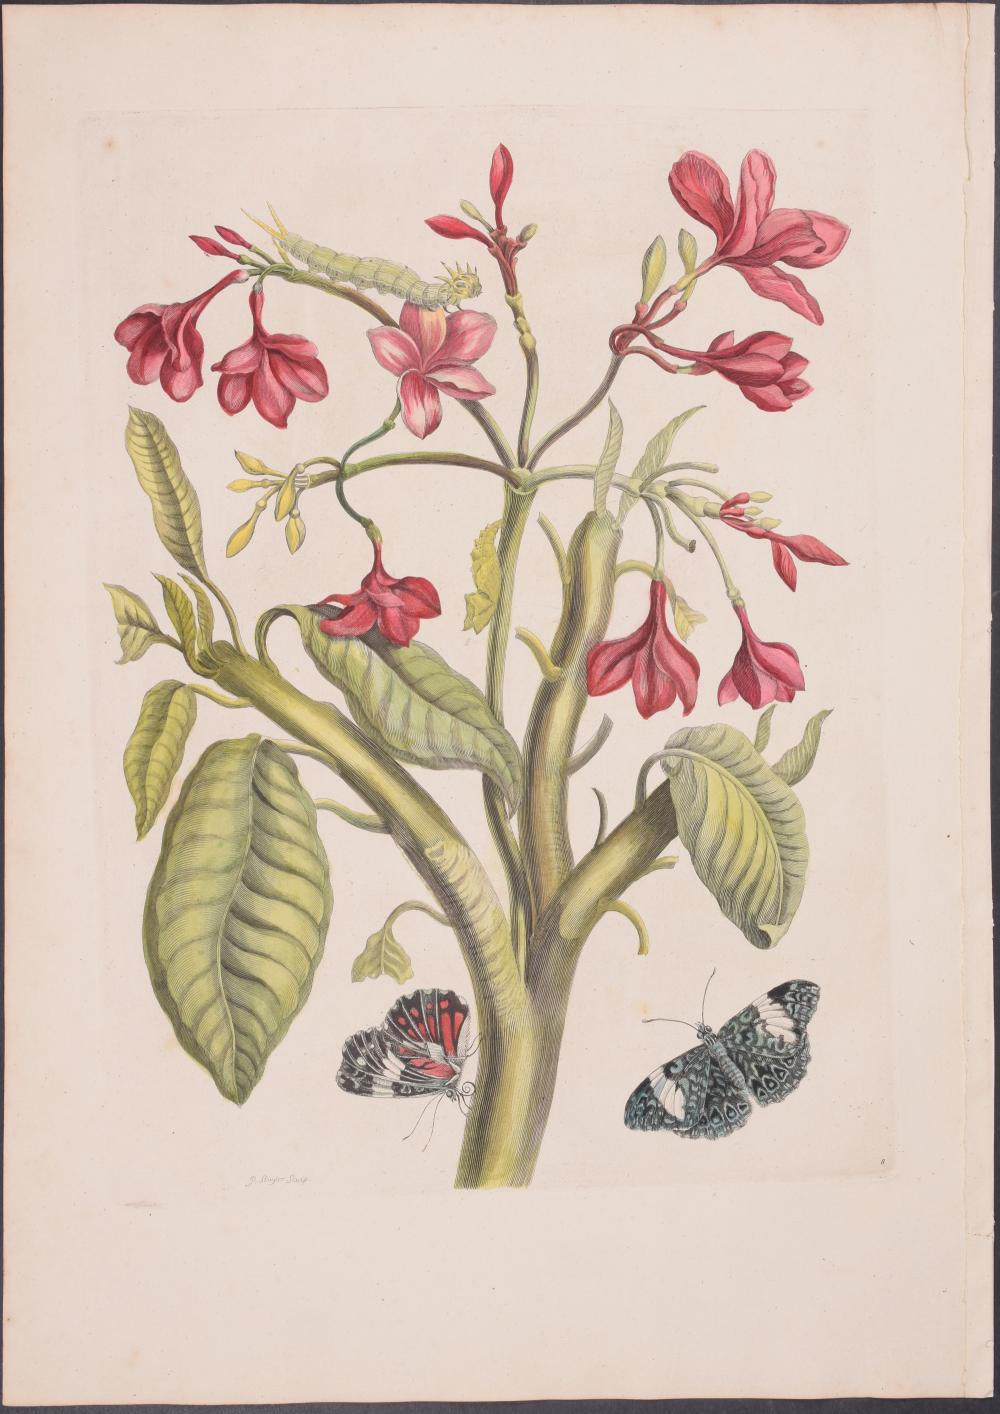 Lot 11189: Merian, Folio - Butterfly Metamorphosis. 8